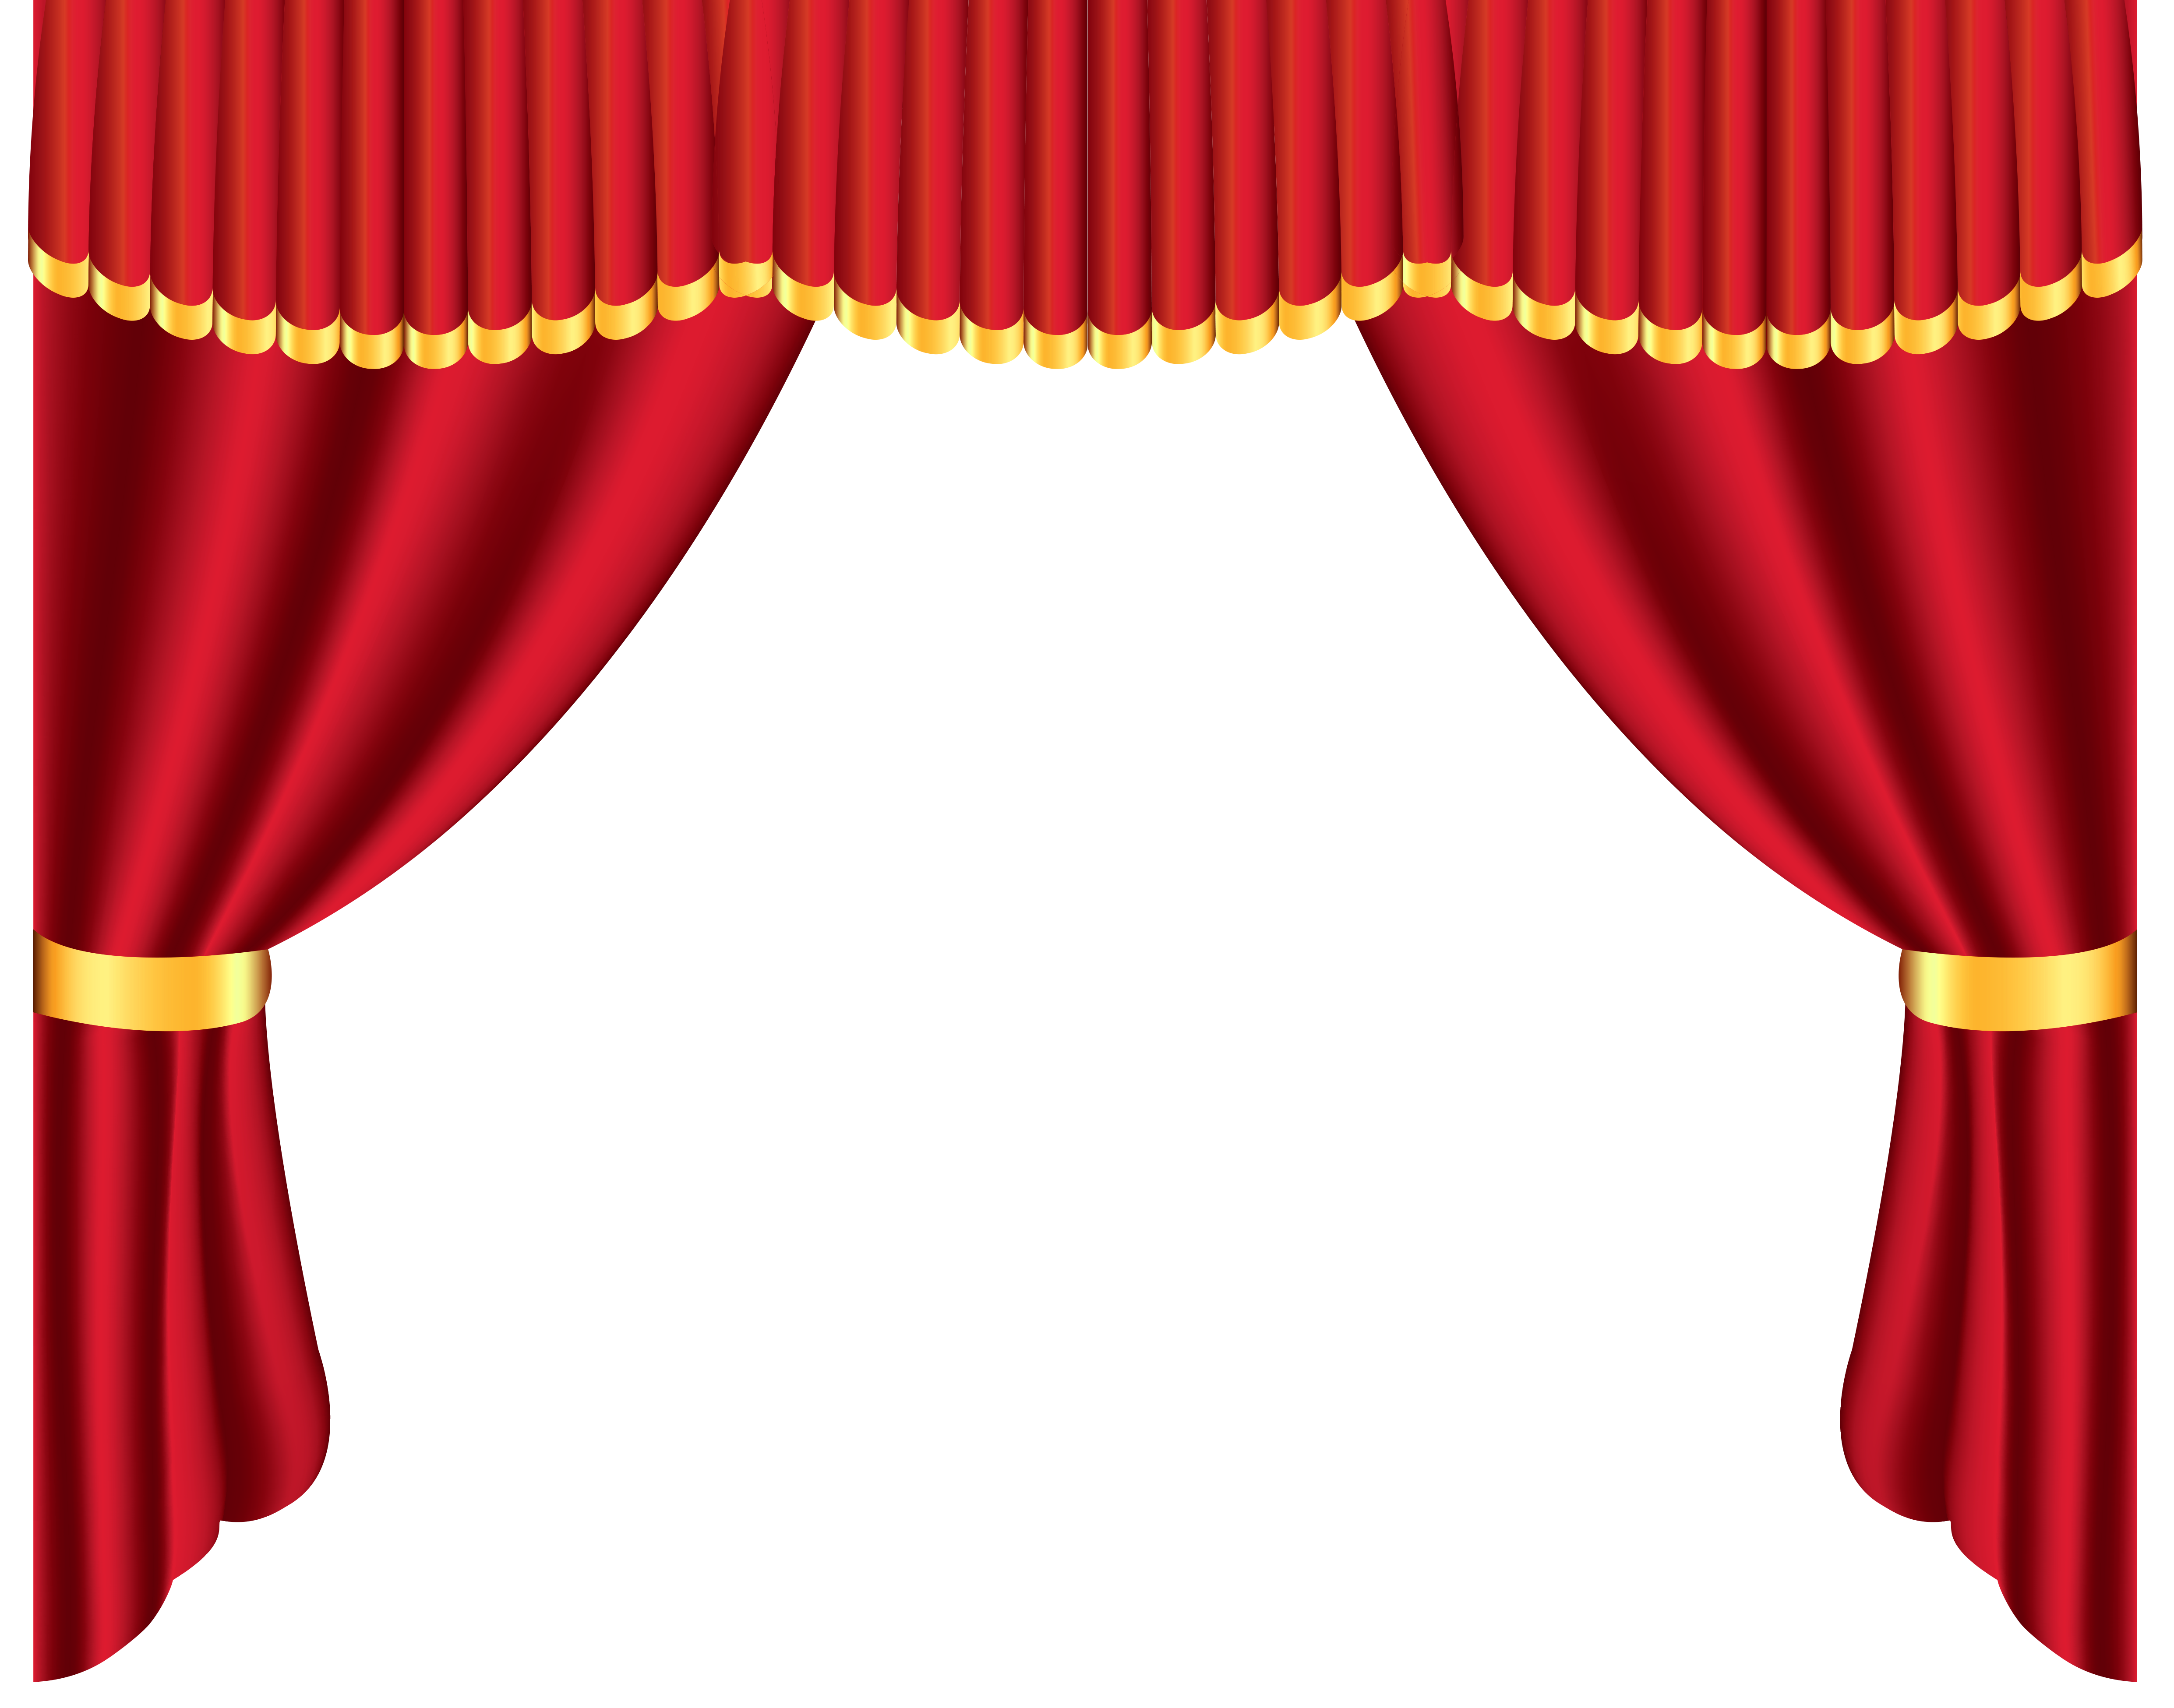 4964x3901 Transparent Red Curtain PNG Clipartu200b Gallery Yopriceville